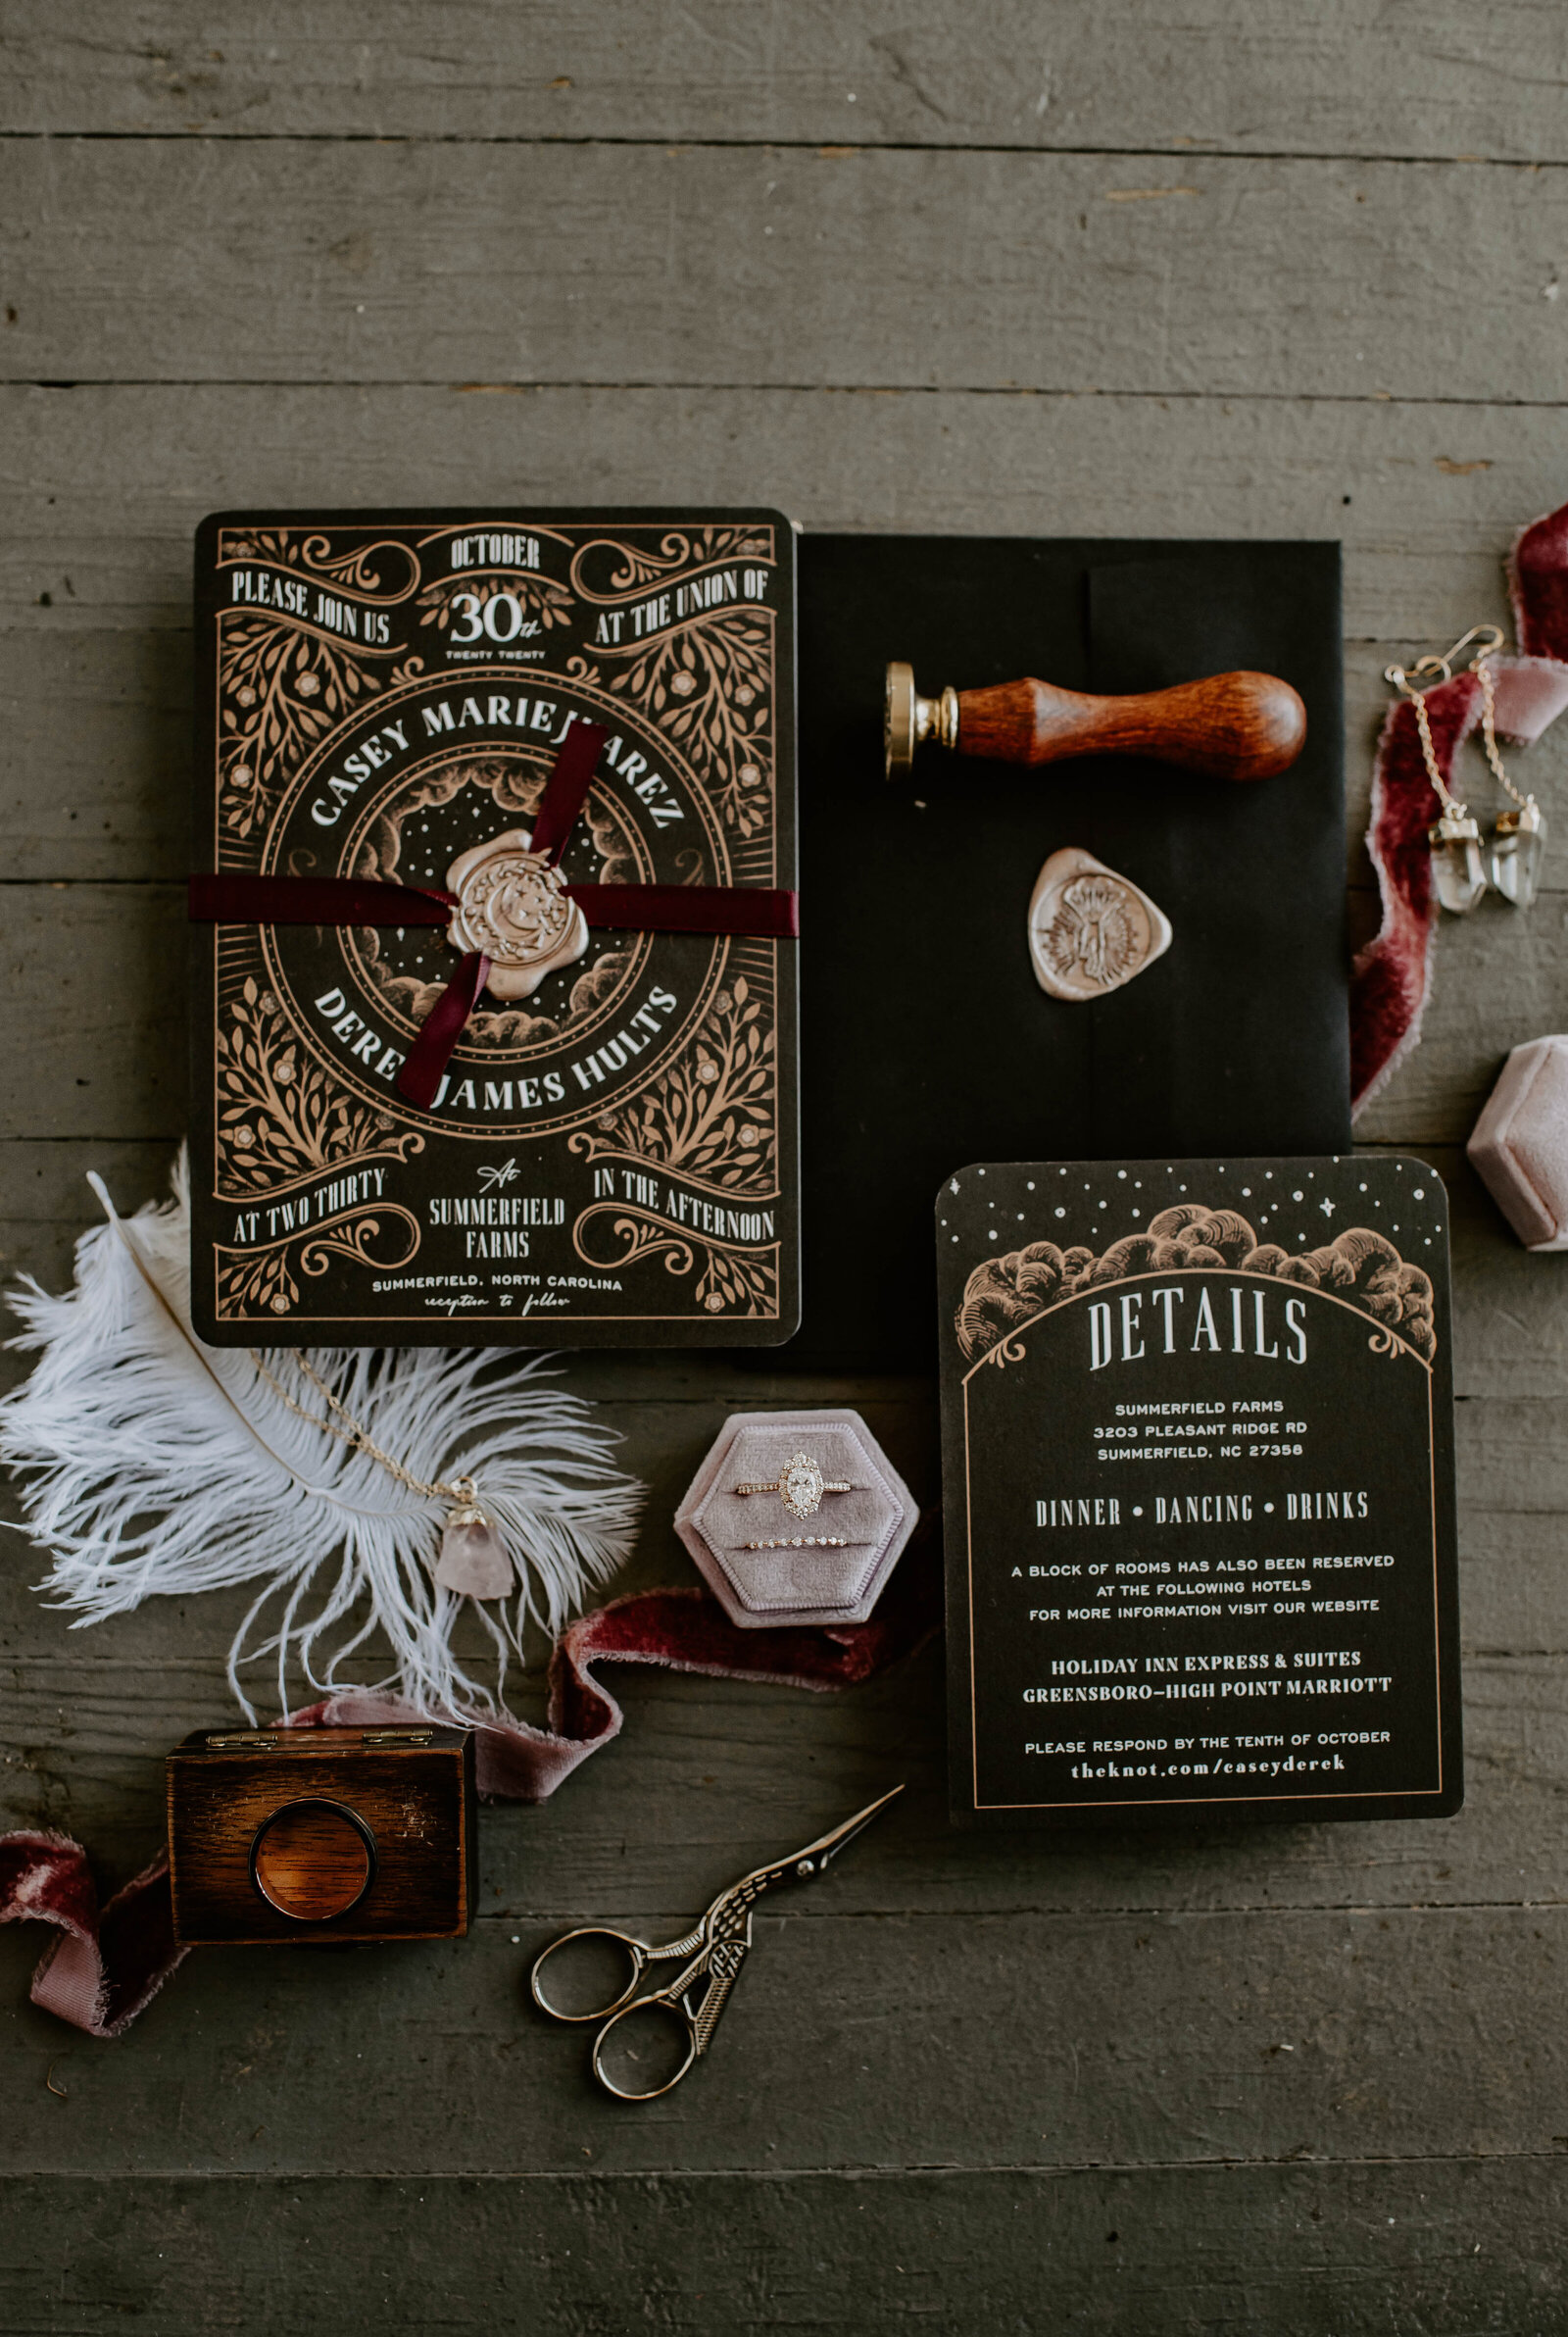 Eclectic wedding photography details for wedding in NoC